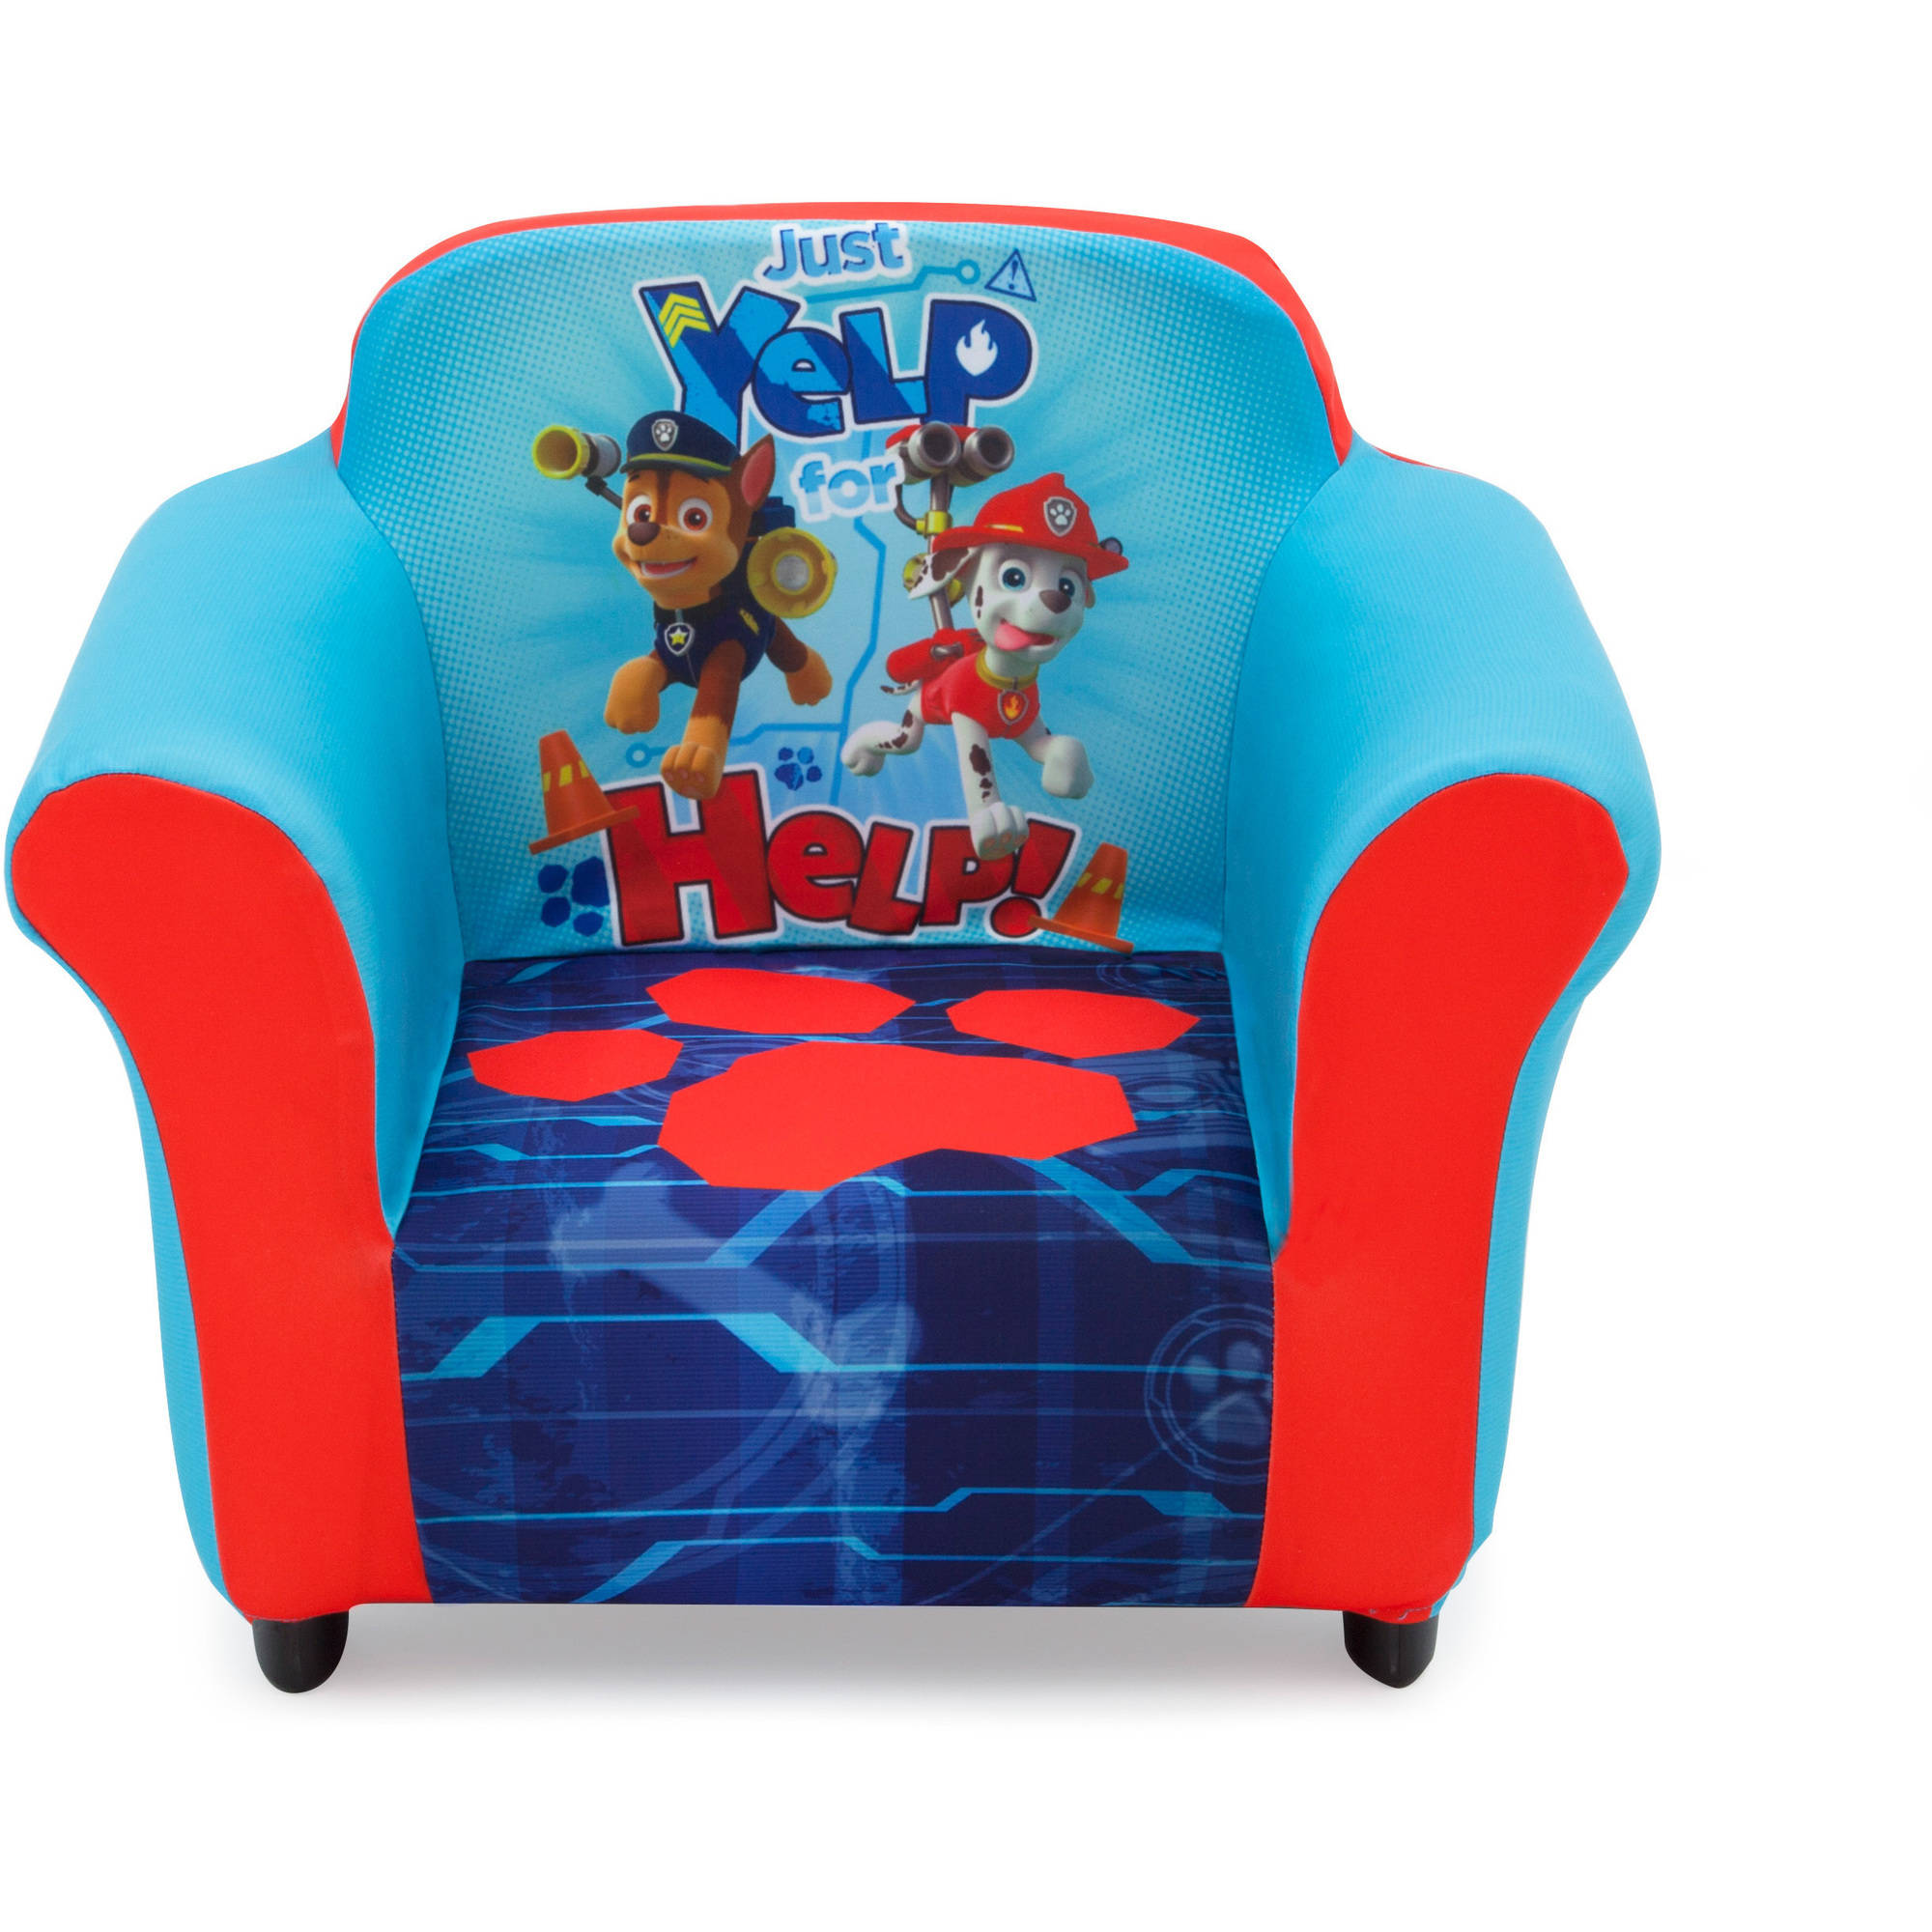 Sofa Infantil Toys R Us Nick Jr Paw Patrol Kids Upholstered Chair With Sculpted Plastic Frame By Delta Children